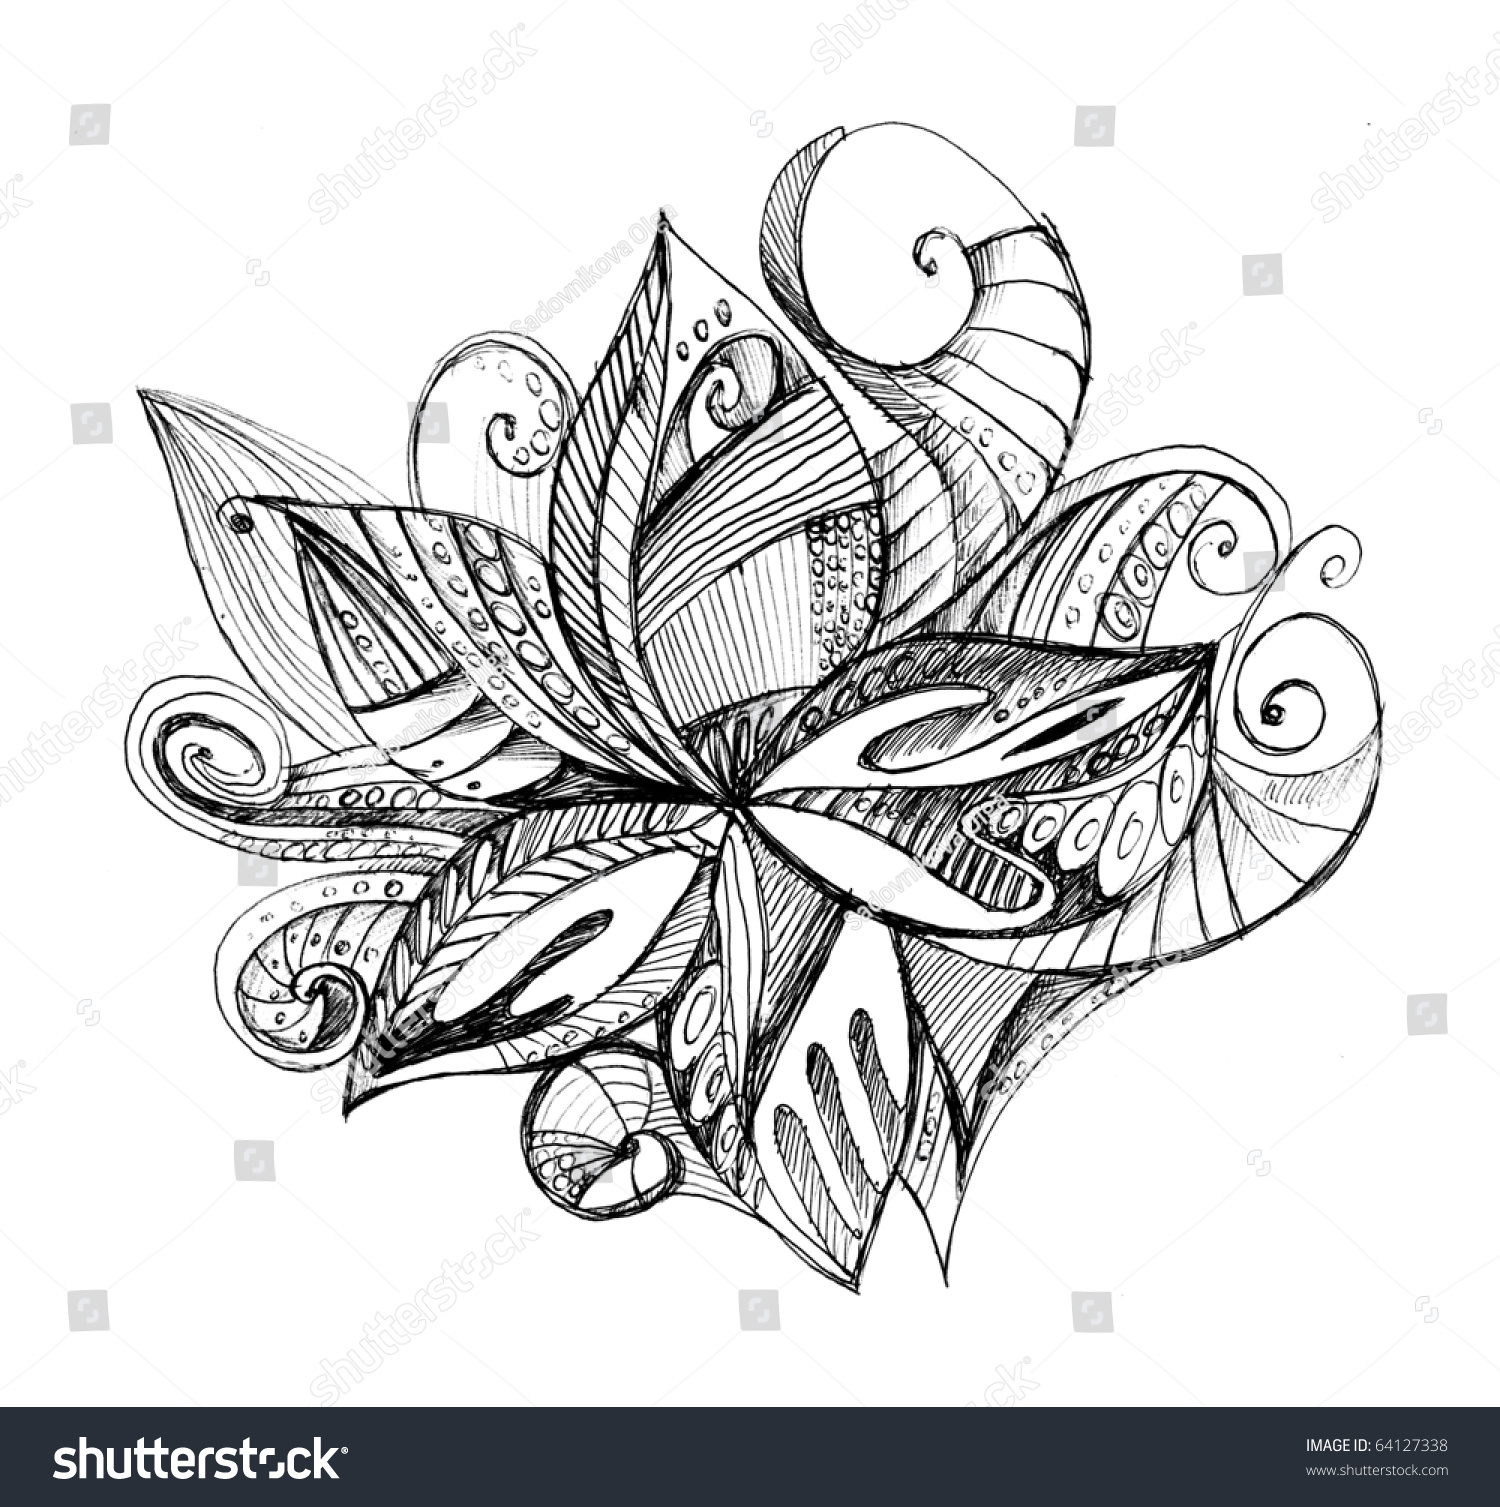 Abstract Unusual Pencil Drawing Stock Illustration 64127338 ...